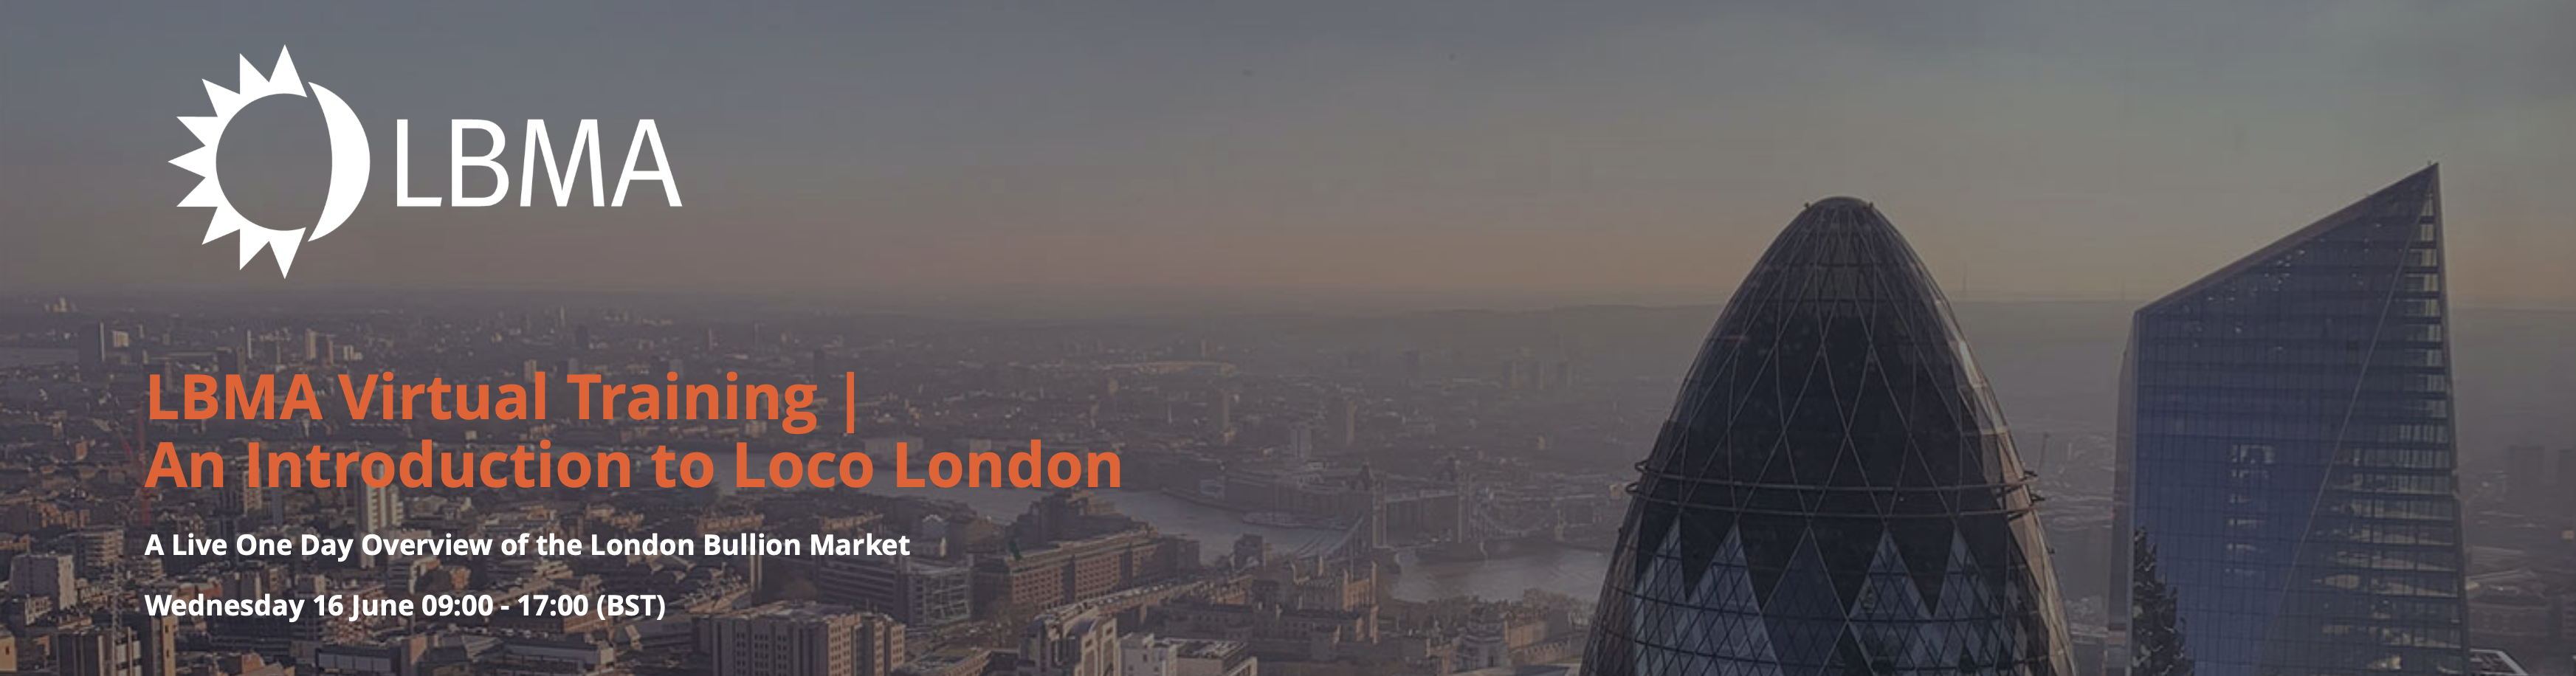 LBMA Virtual Training | An Introduction to Loco London